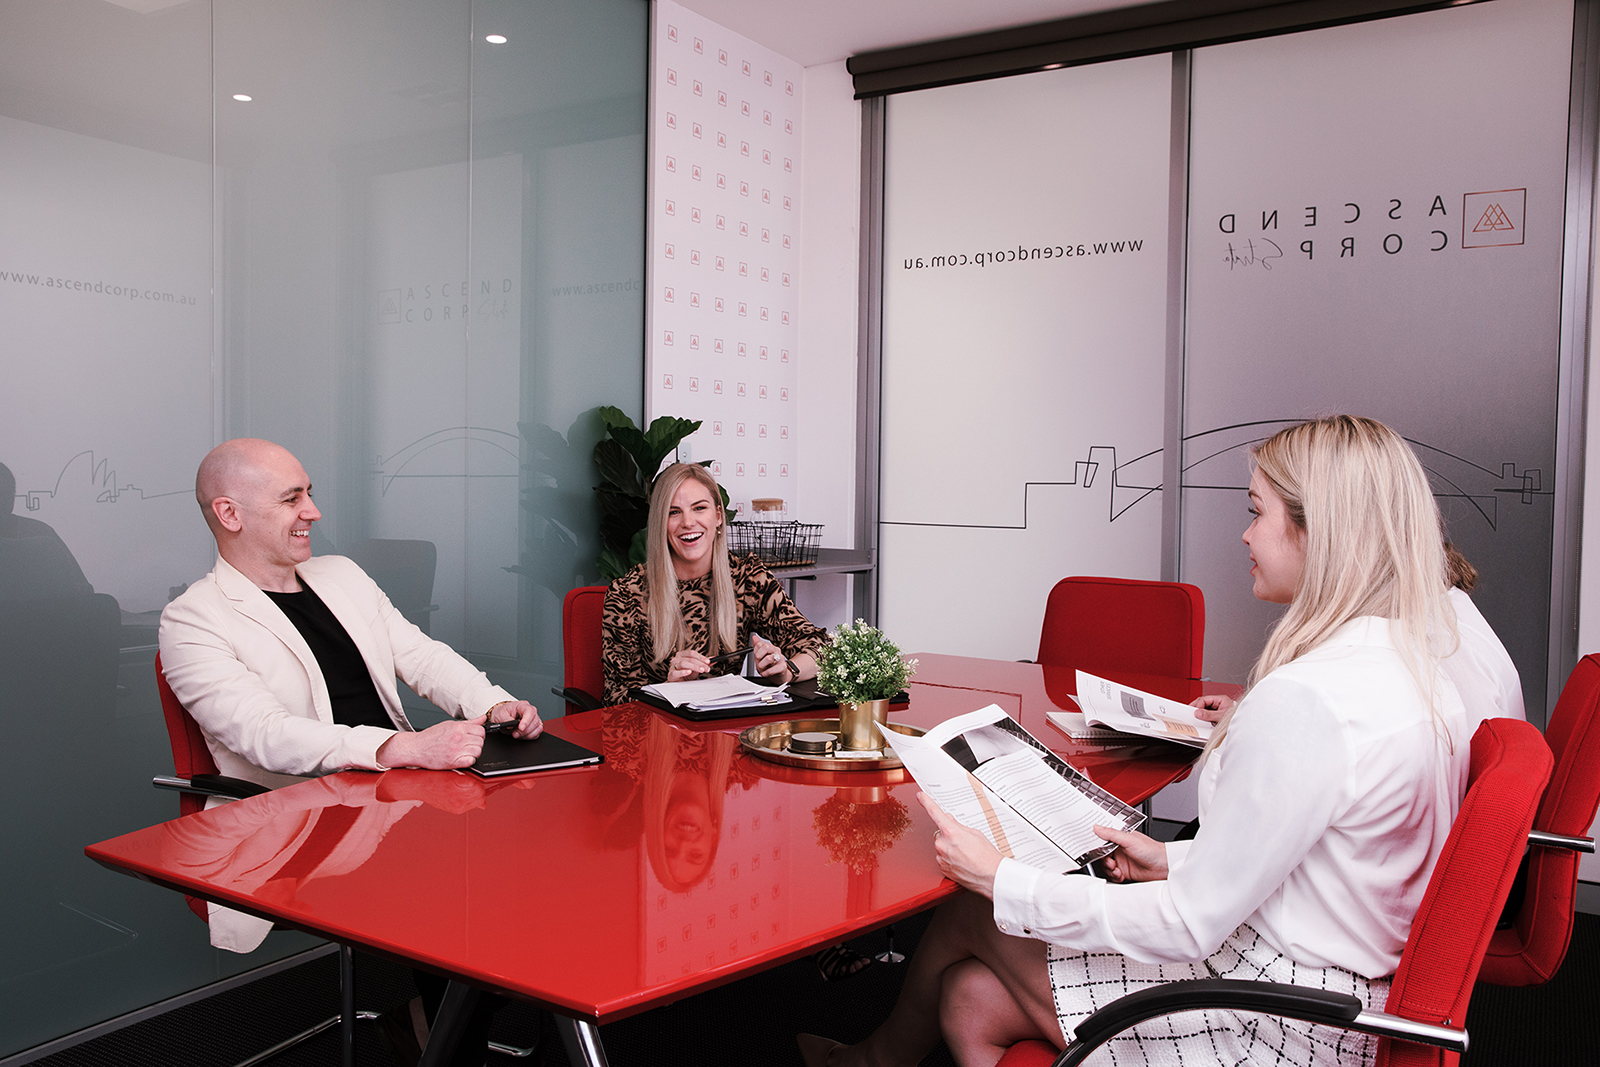 Ascend Corp Strata-office-with-team-image